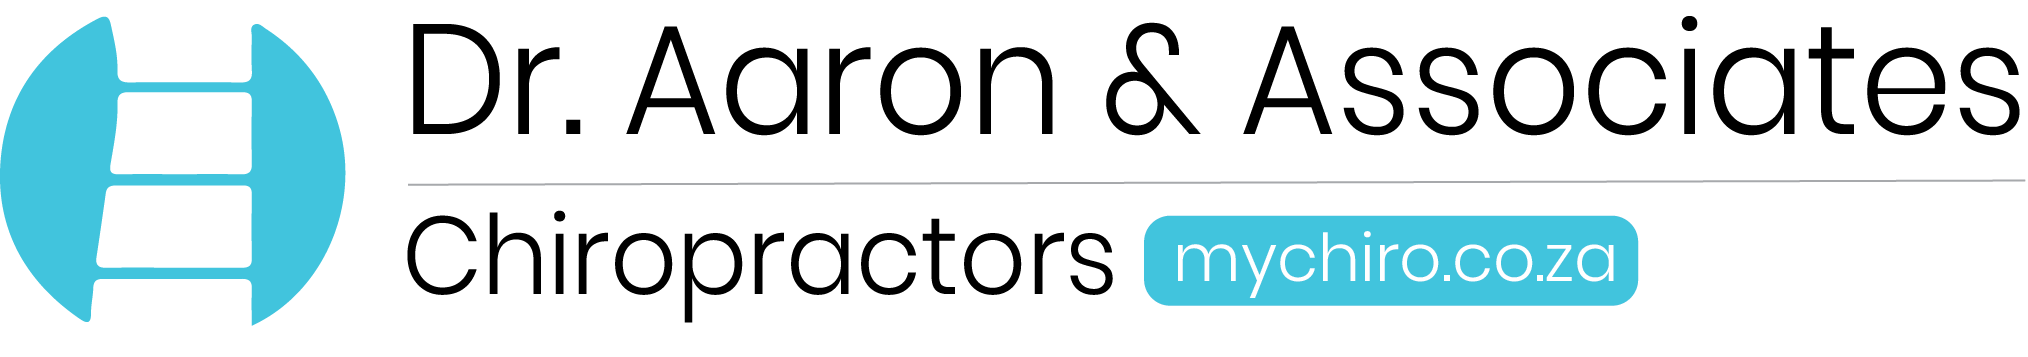 Dr. Aaron and Associates New descriptive and Informative Logo. with dark grey font.